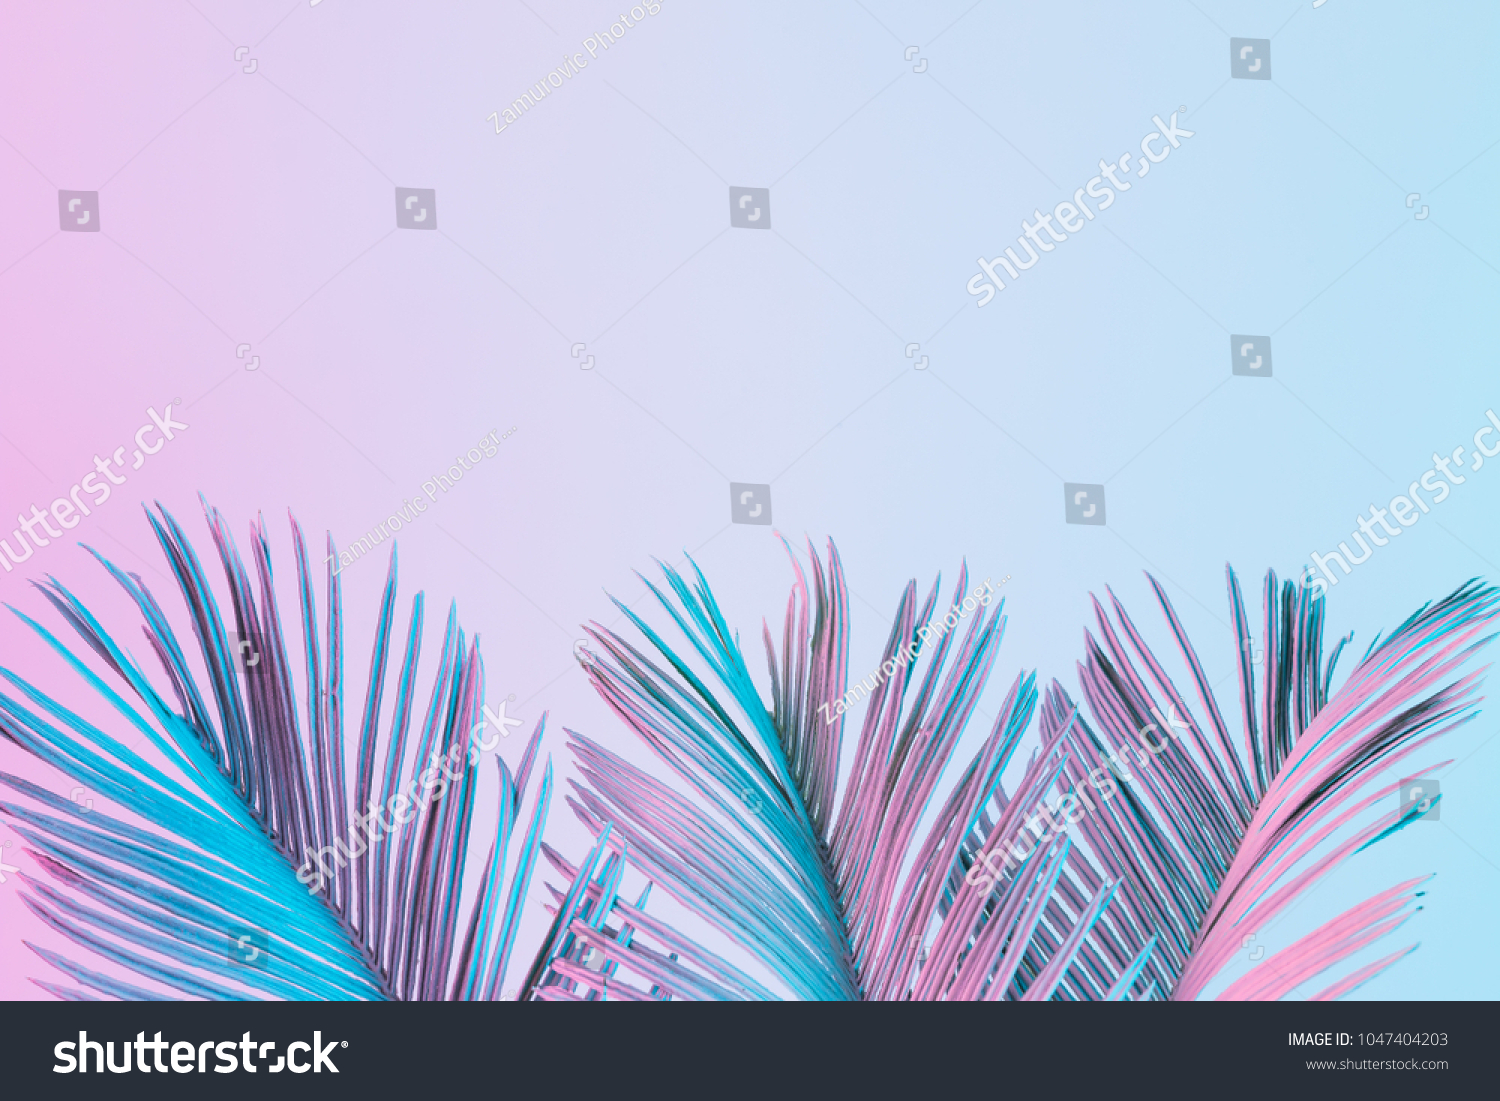 Tropical and palm leaves in vibrant bold gradient holographic colors. Concept art. Minimal surrealism. #1047404203 - 123PhotoFree.com